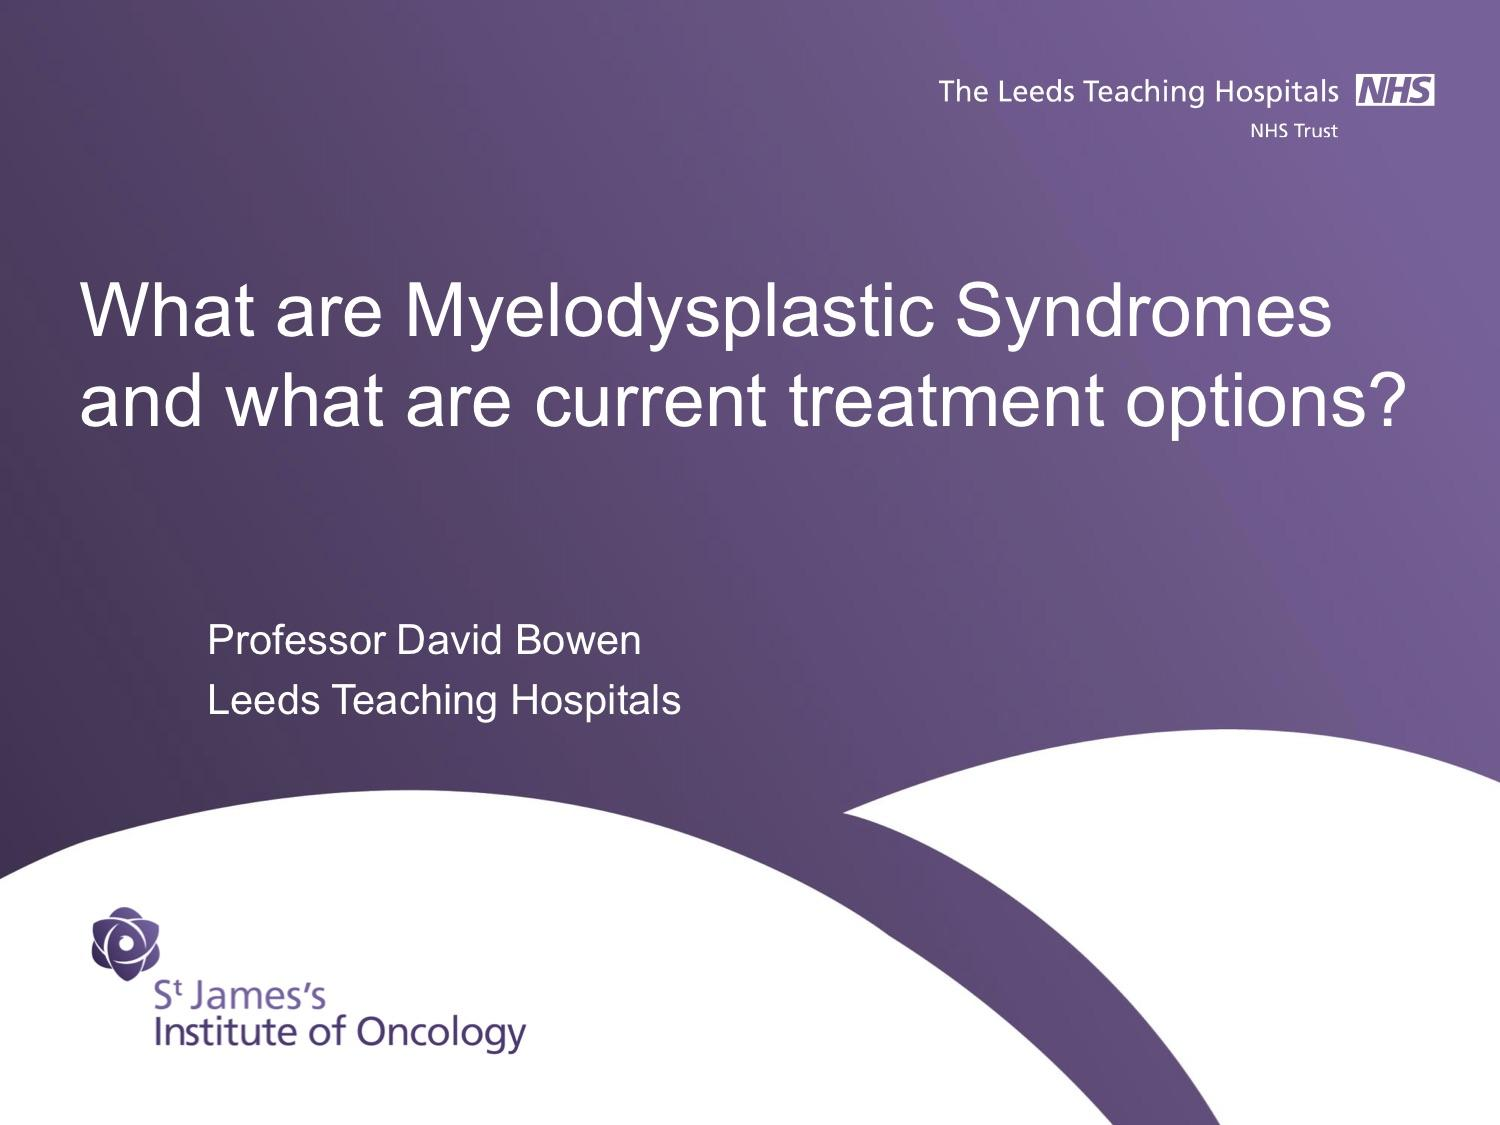 What are Myelodysplastic Syndromes and what are their current treatment options